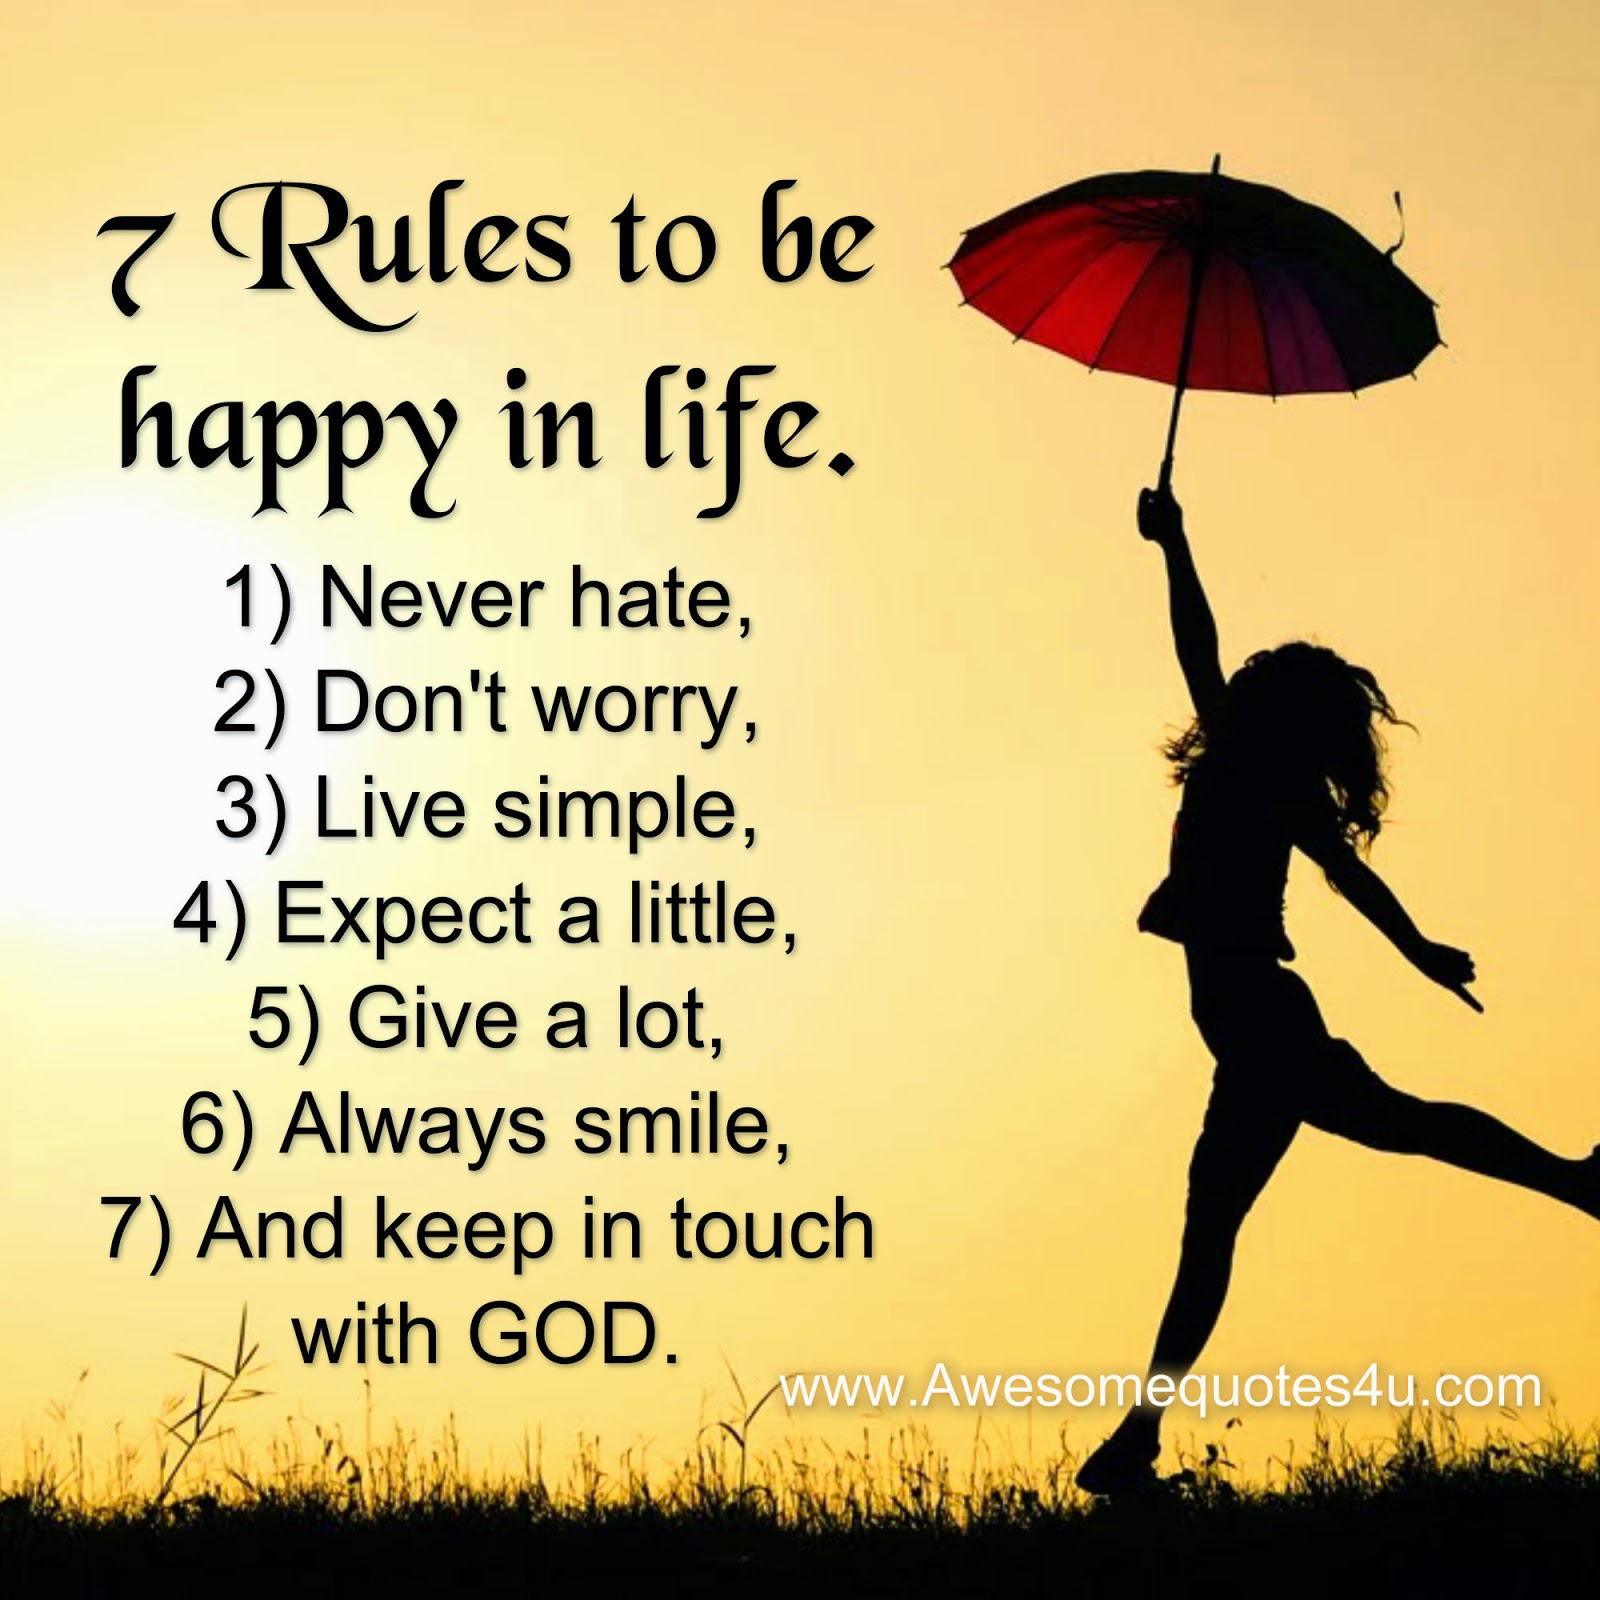 7 Rules Of Life Quote: Awesome Quotes: February 2015